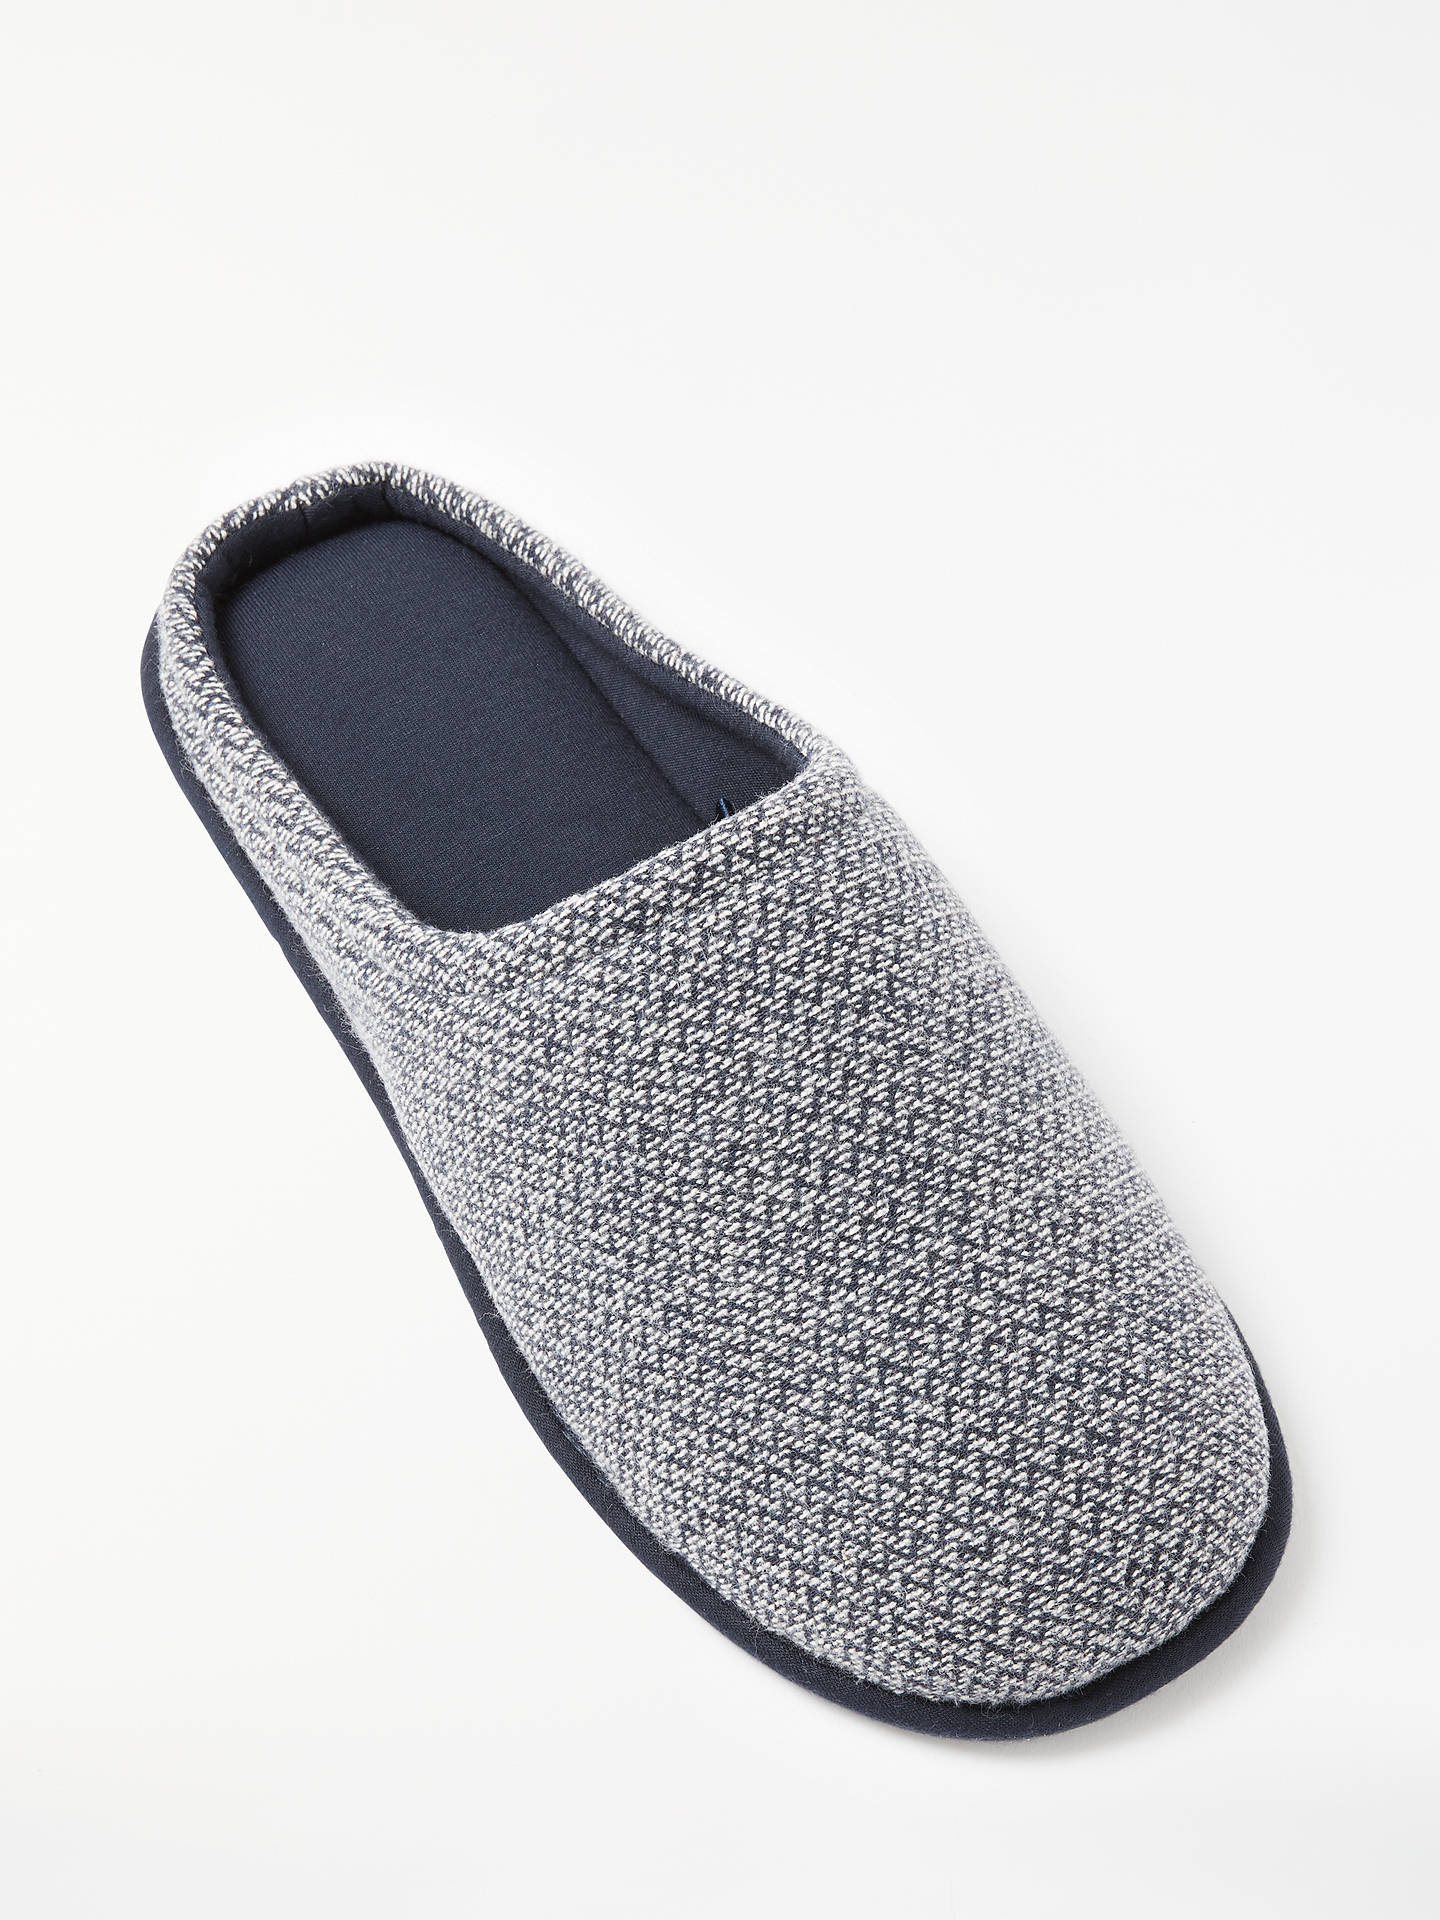 BuyJohn Lewis & Partners Zigzag Mule Slippers, Navy/white, S Online at johnlewis.com